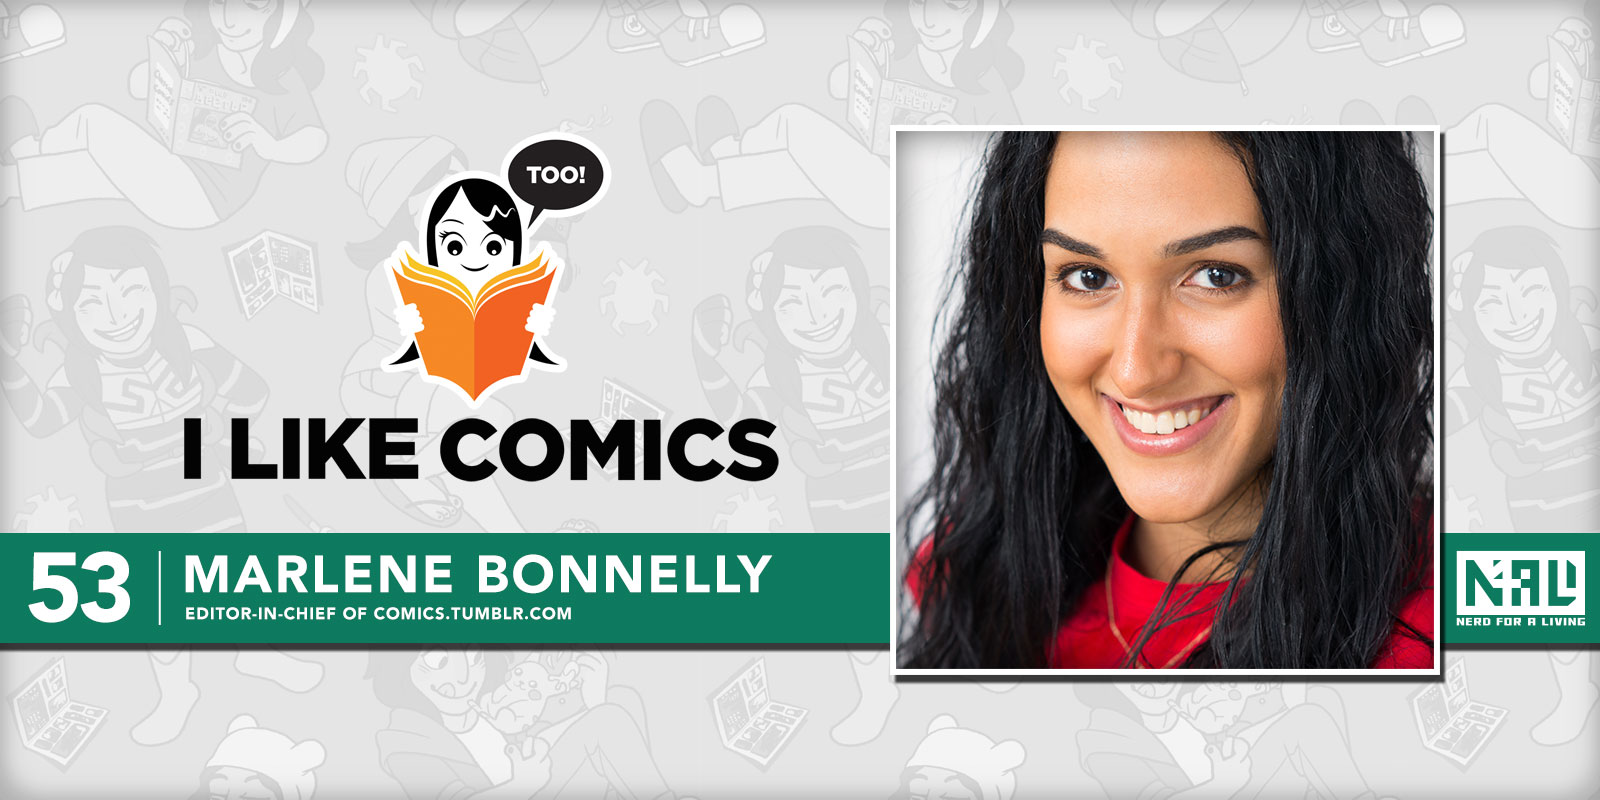 Marlene Bonnelly, Editor-in-Chief of Comics Tumblr com